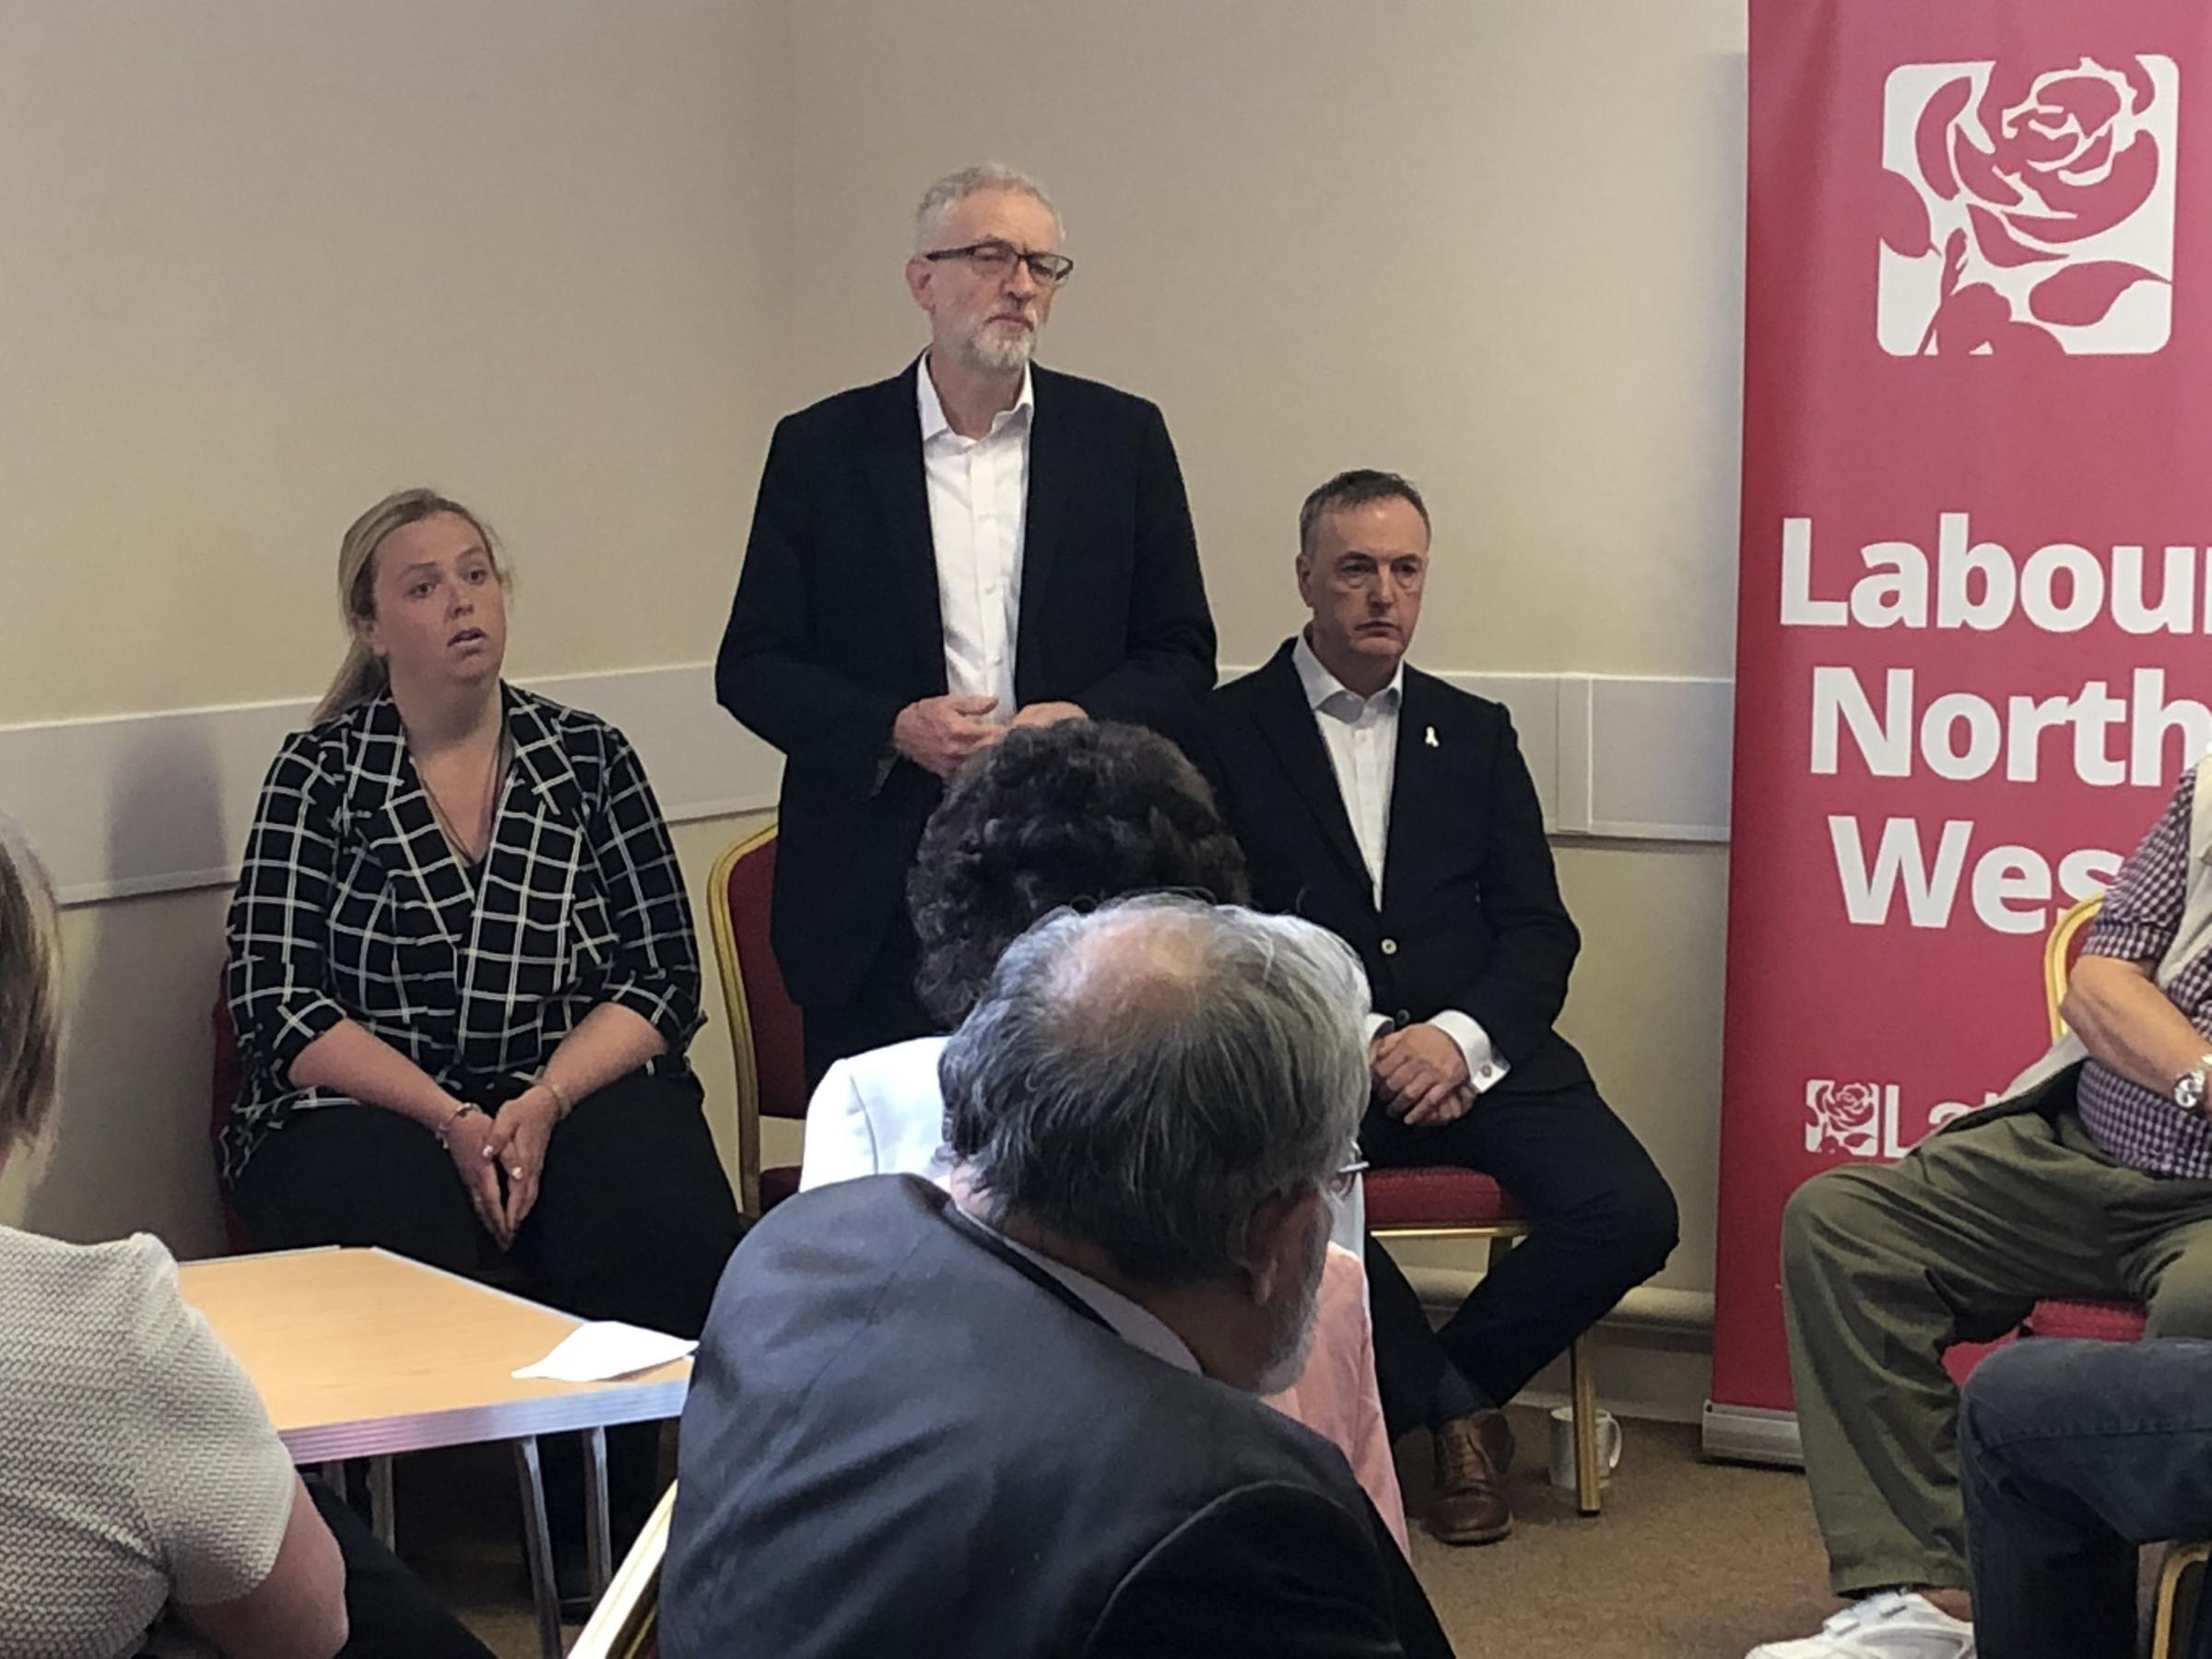 Jeremy Corbyn addresses the meeting of residents along with Kim Snape and Clive Grunshaw